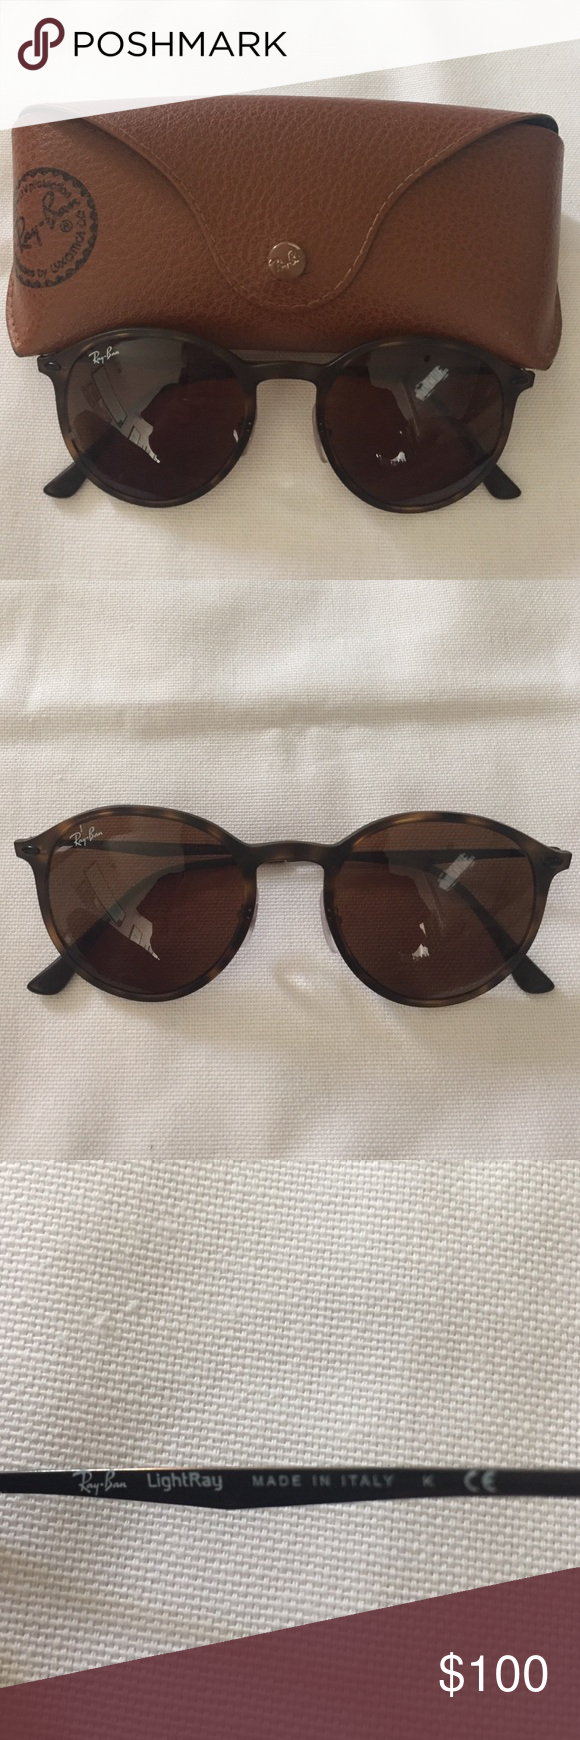 Authentic Ray-Ban 4224 Worn once - no scratches. In the color LightRay. RB 4224 894/73 49-20. Comes with case. No trades. Ray-Ban Accessories Sunglasses